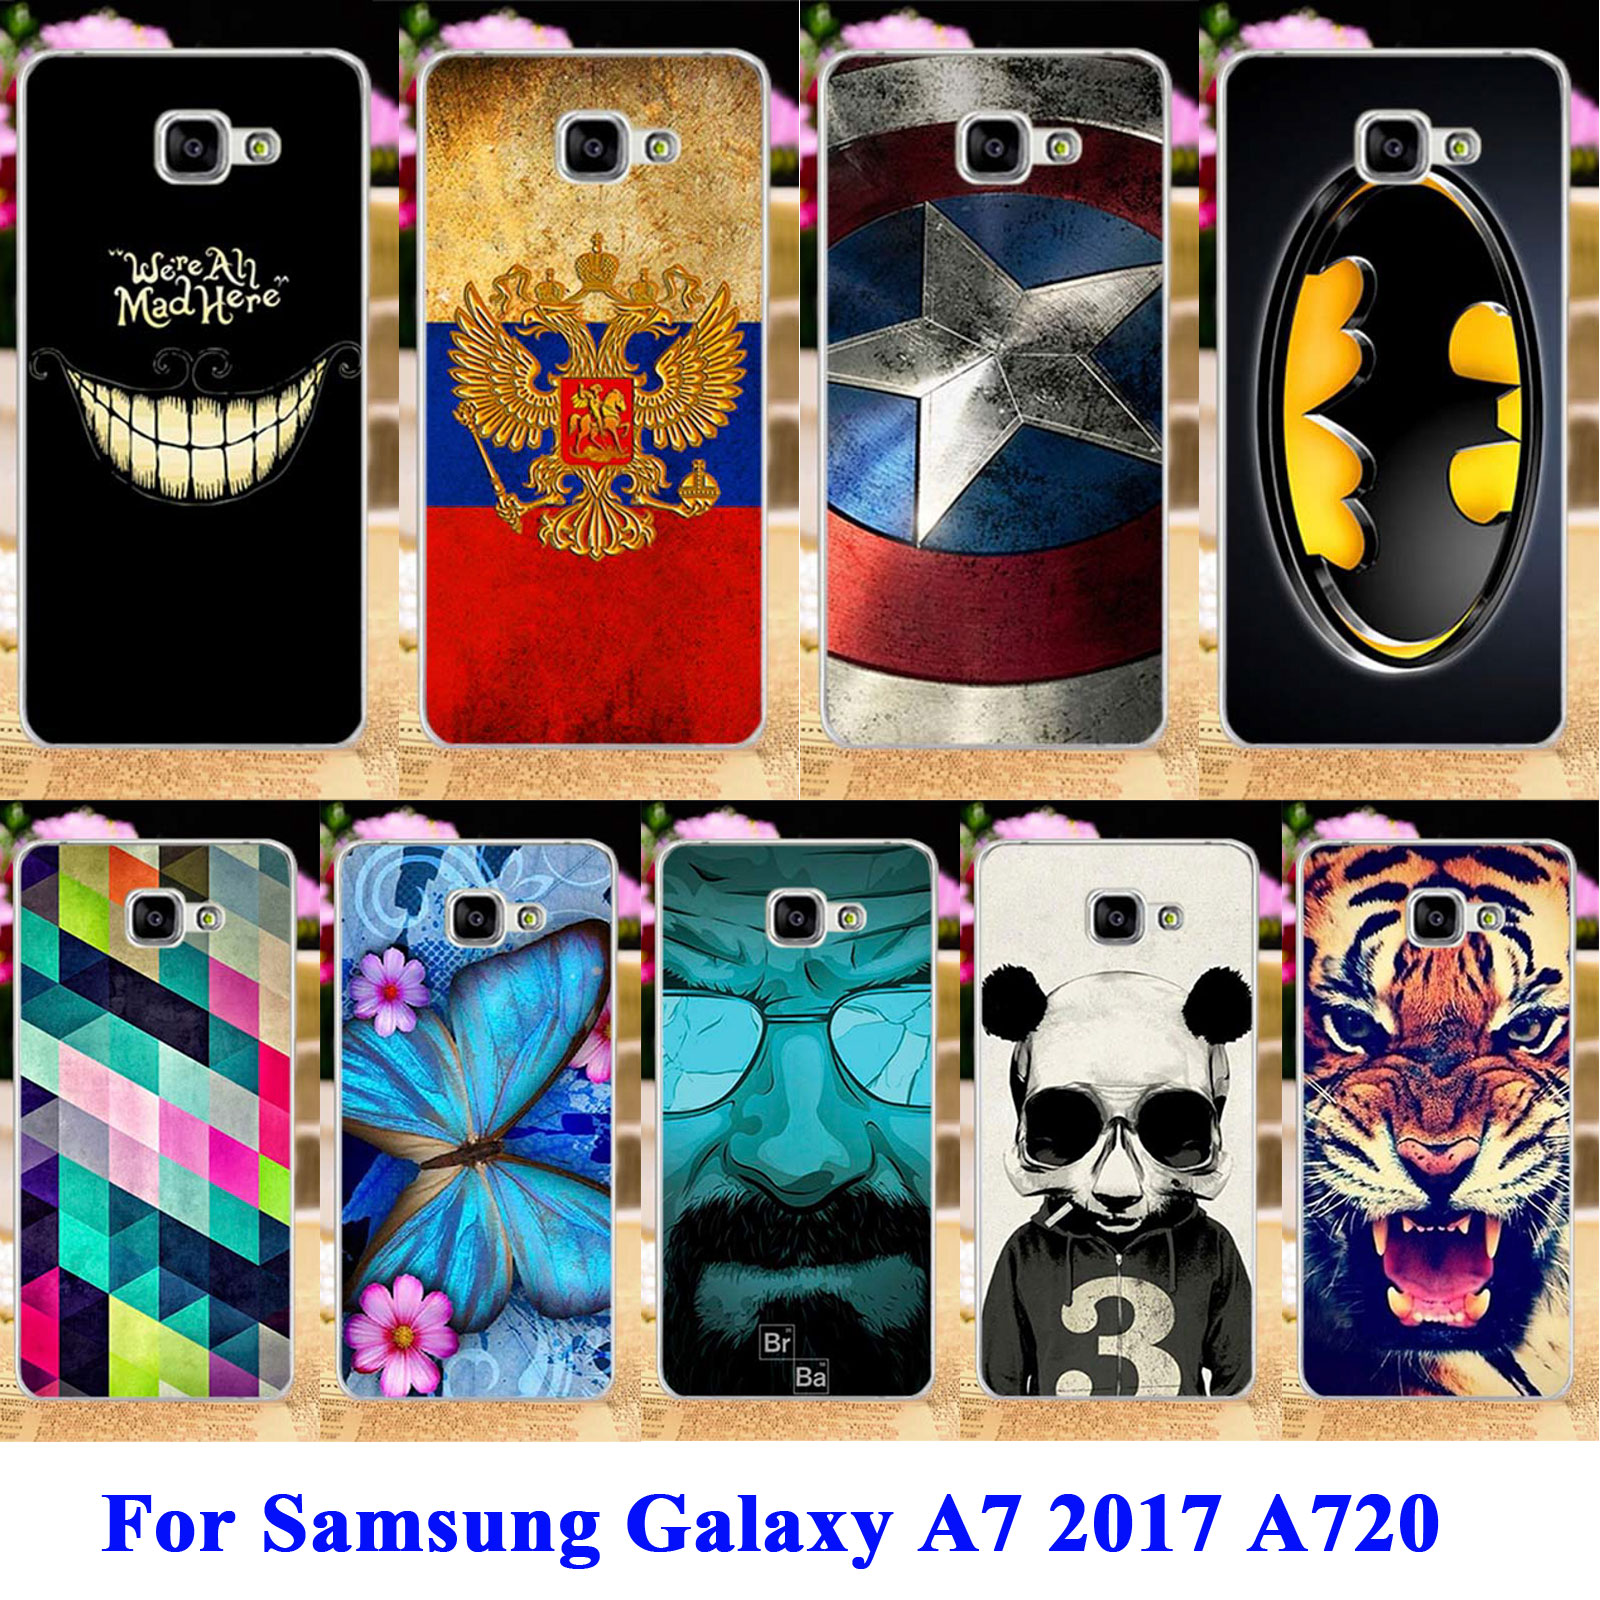 Anunob Cell Phone Cases For Samsung Galaxy A7 2017 Covers Duos A720 Cat Tiger Captain American Soft TPU Bag Shell